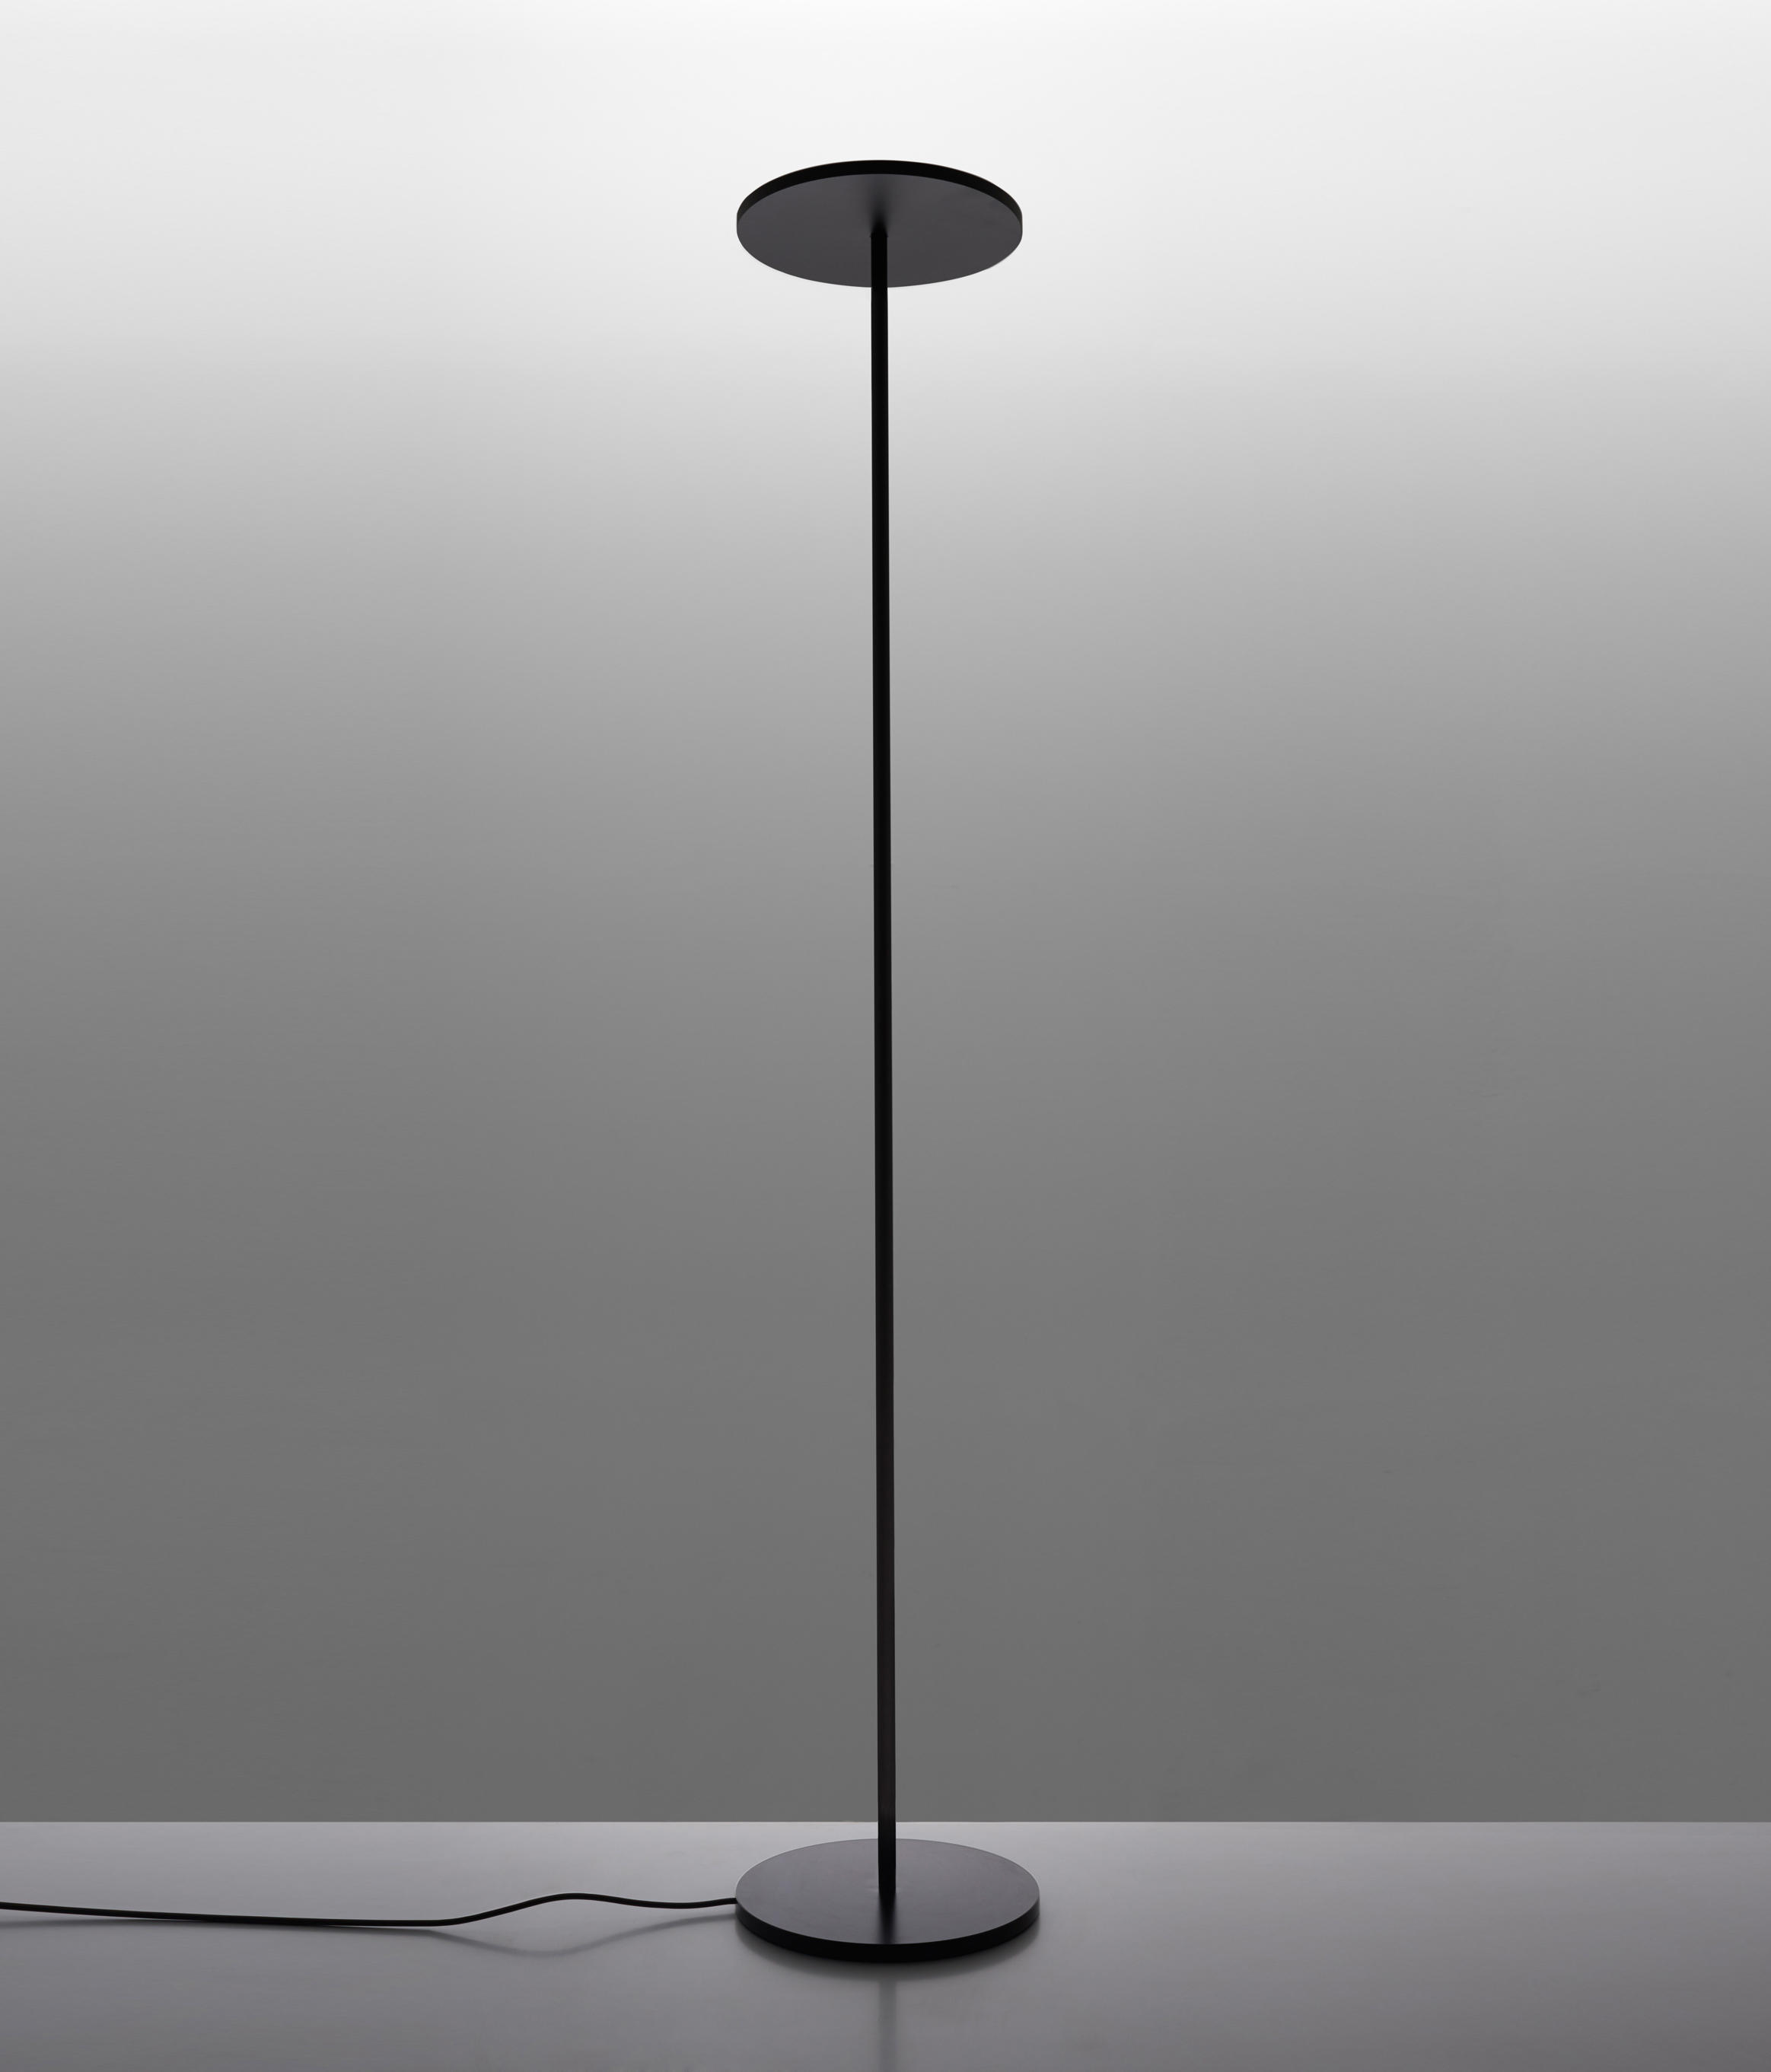 Artemide Lamp Athena Floor Lamp Free Standing Lights From Artemide Architonic